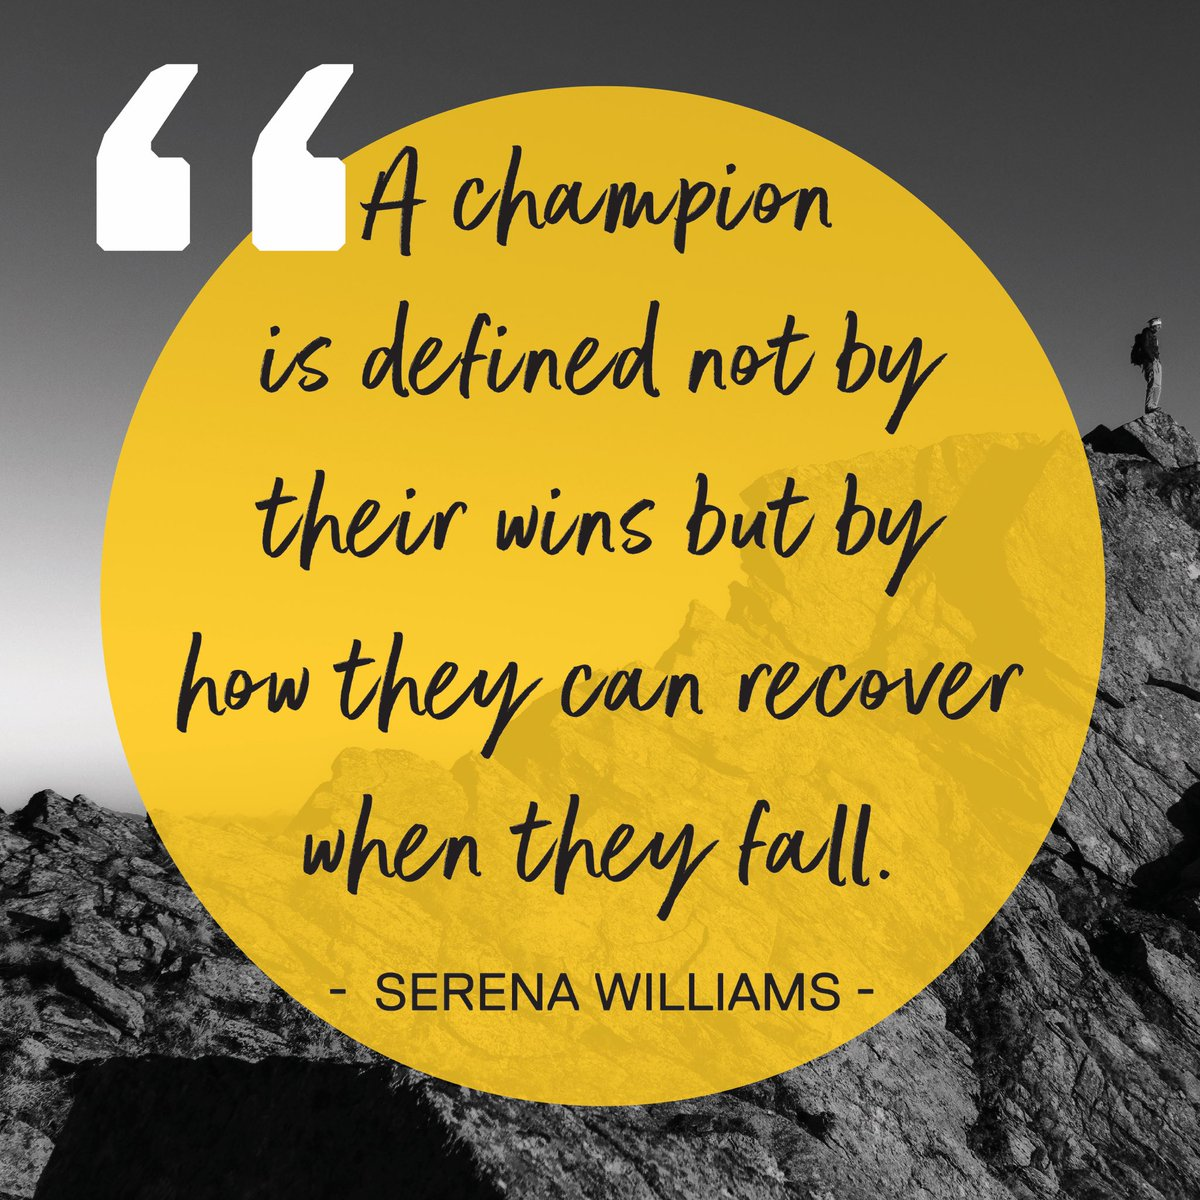 An inspiring quote from a true champion @serenawilliams. #mindset #grit #persistence #wellbeing